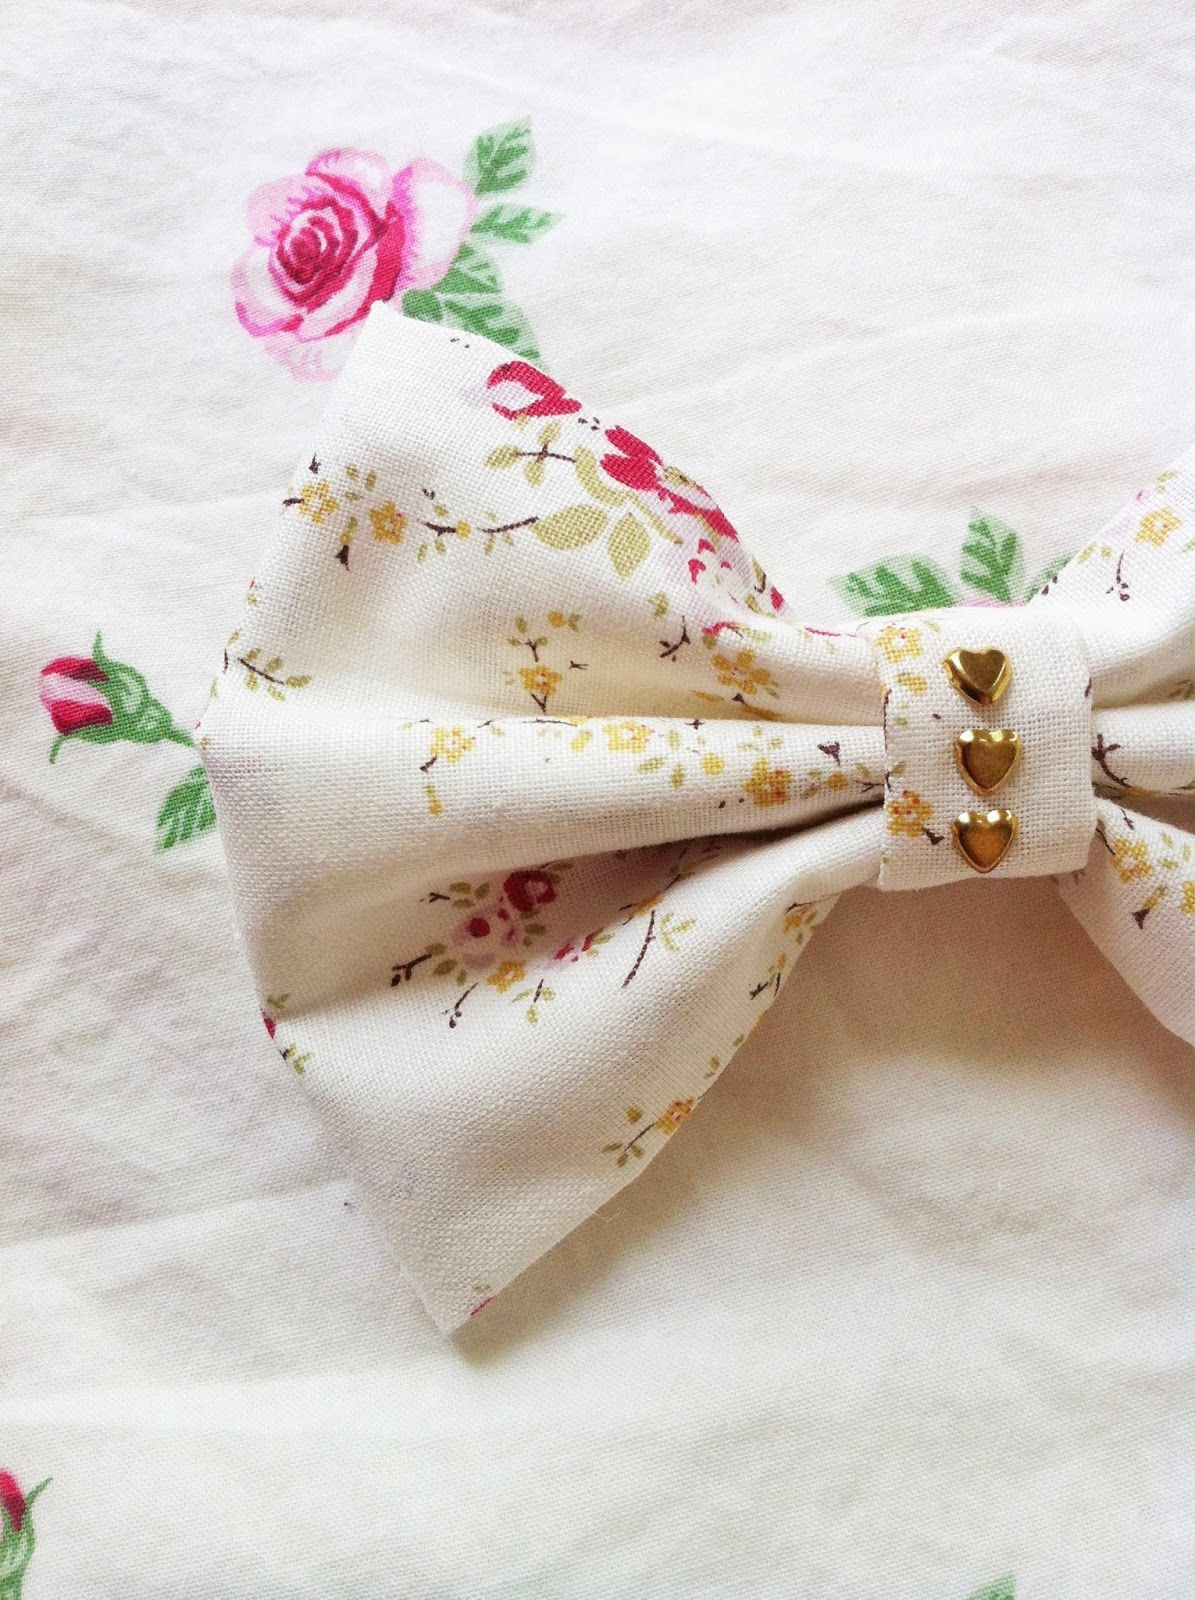 Floral Bouquet Bow with Gold Hearts Available in Medium ($7) and Large ($9)